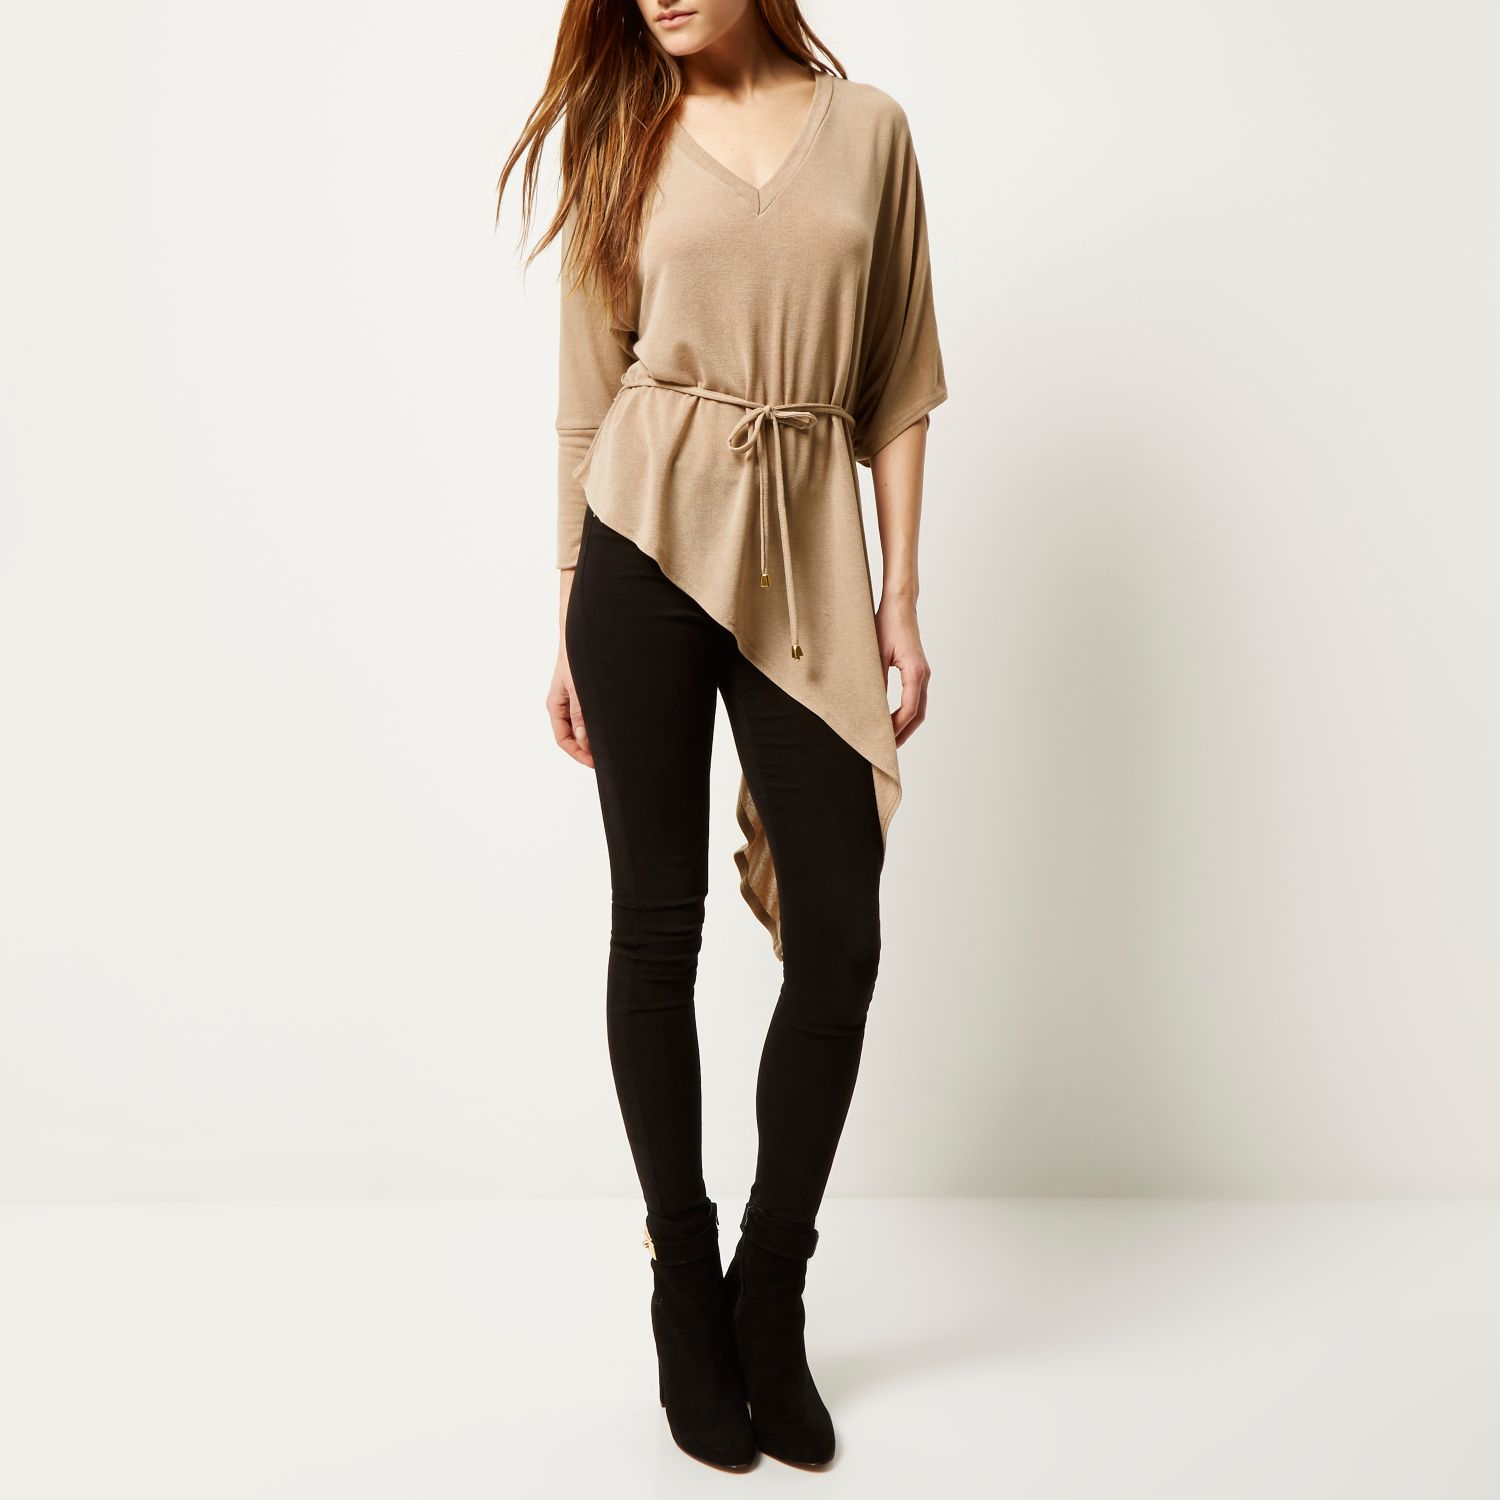 c5022ca88763e2 Lyst - River Island Beige Belted V-neck Asymmetric Knitted Top in ...